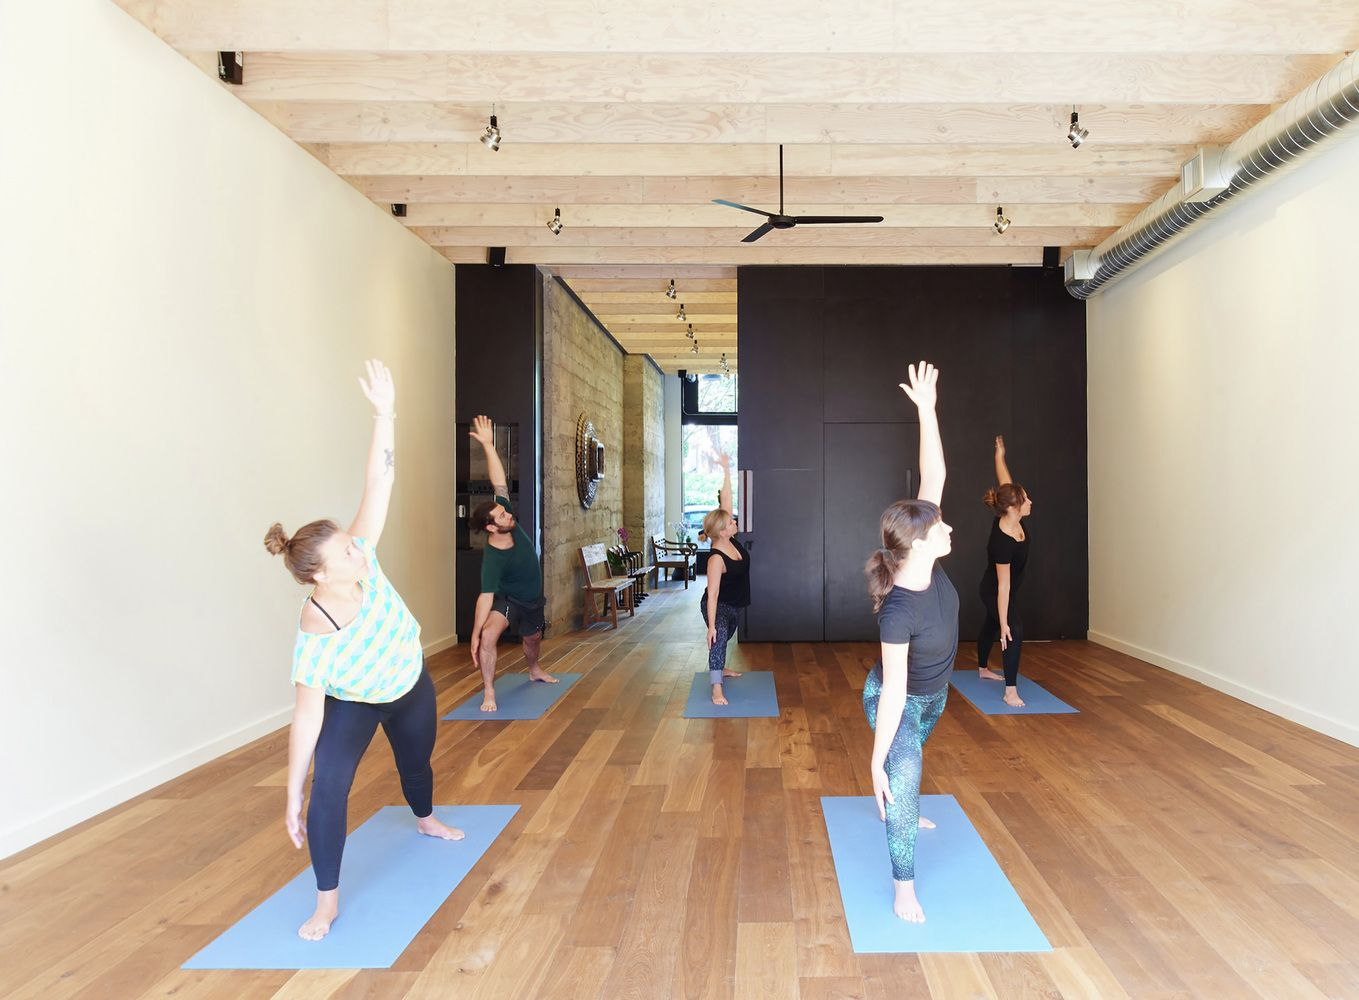 The Key Architectural Elements Required to Design Yoga and ...